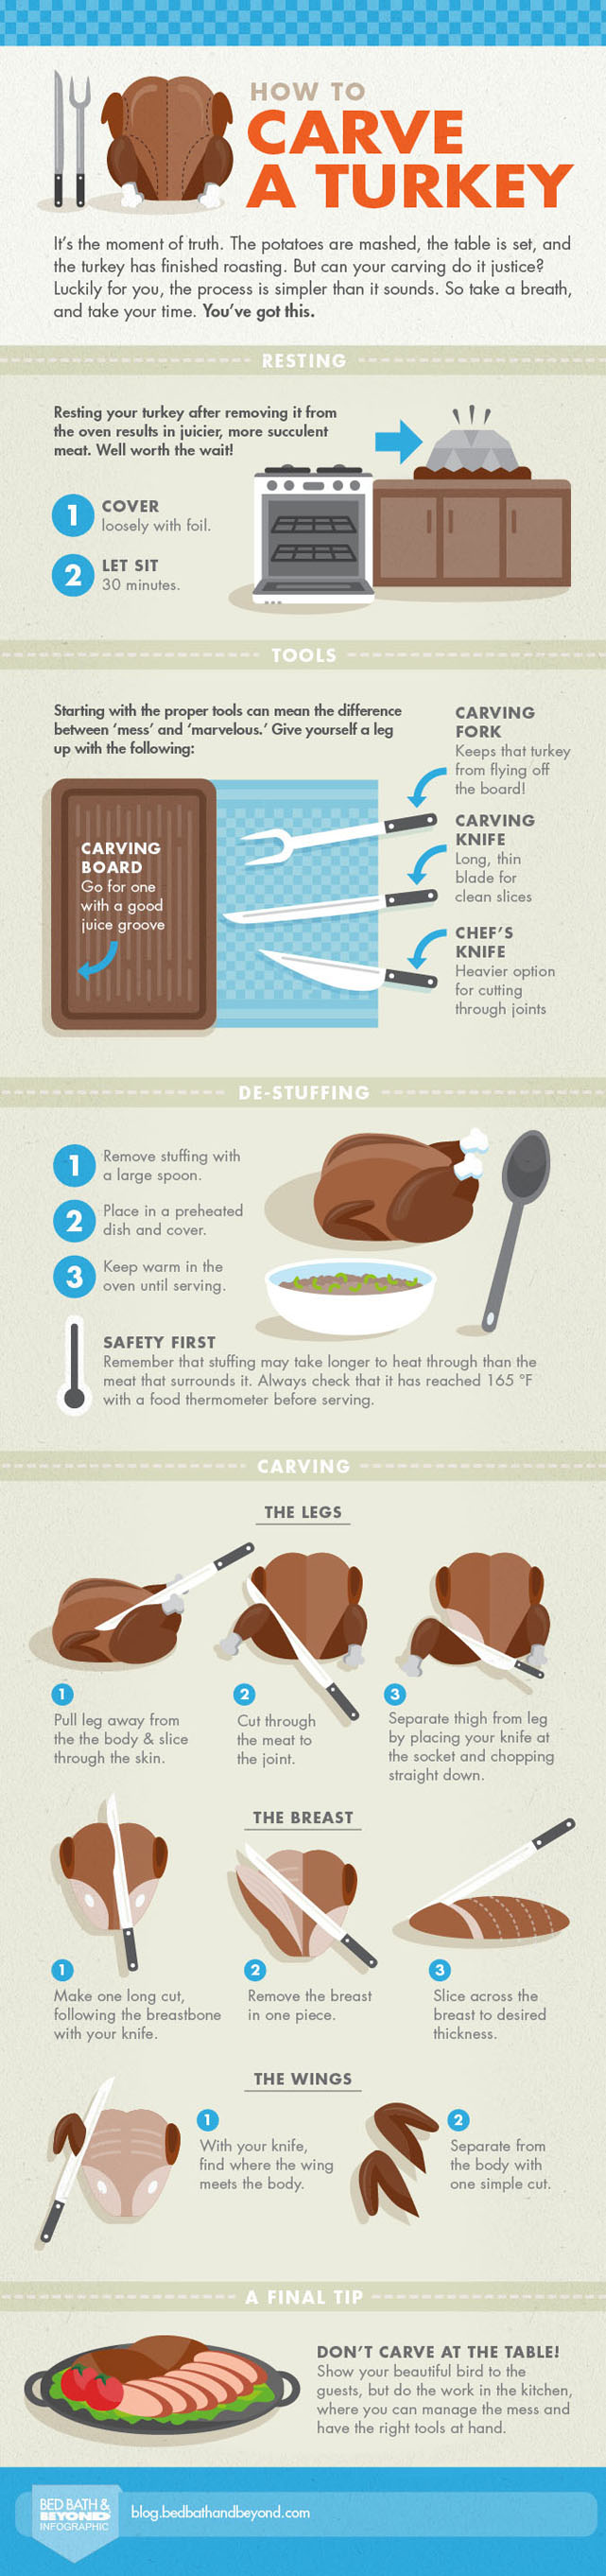 Learn The Art Of Carving A Turkey - Infographic